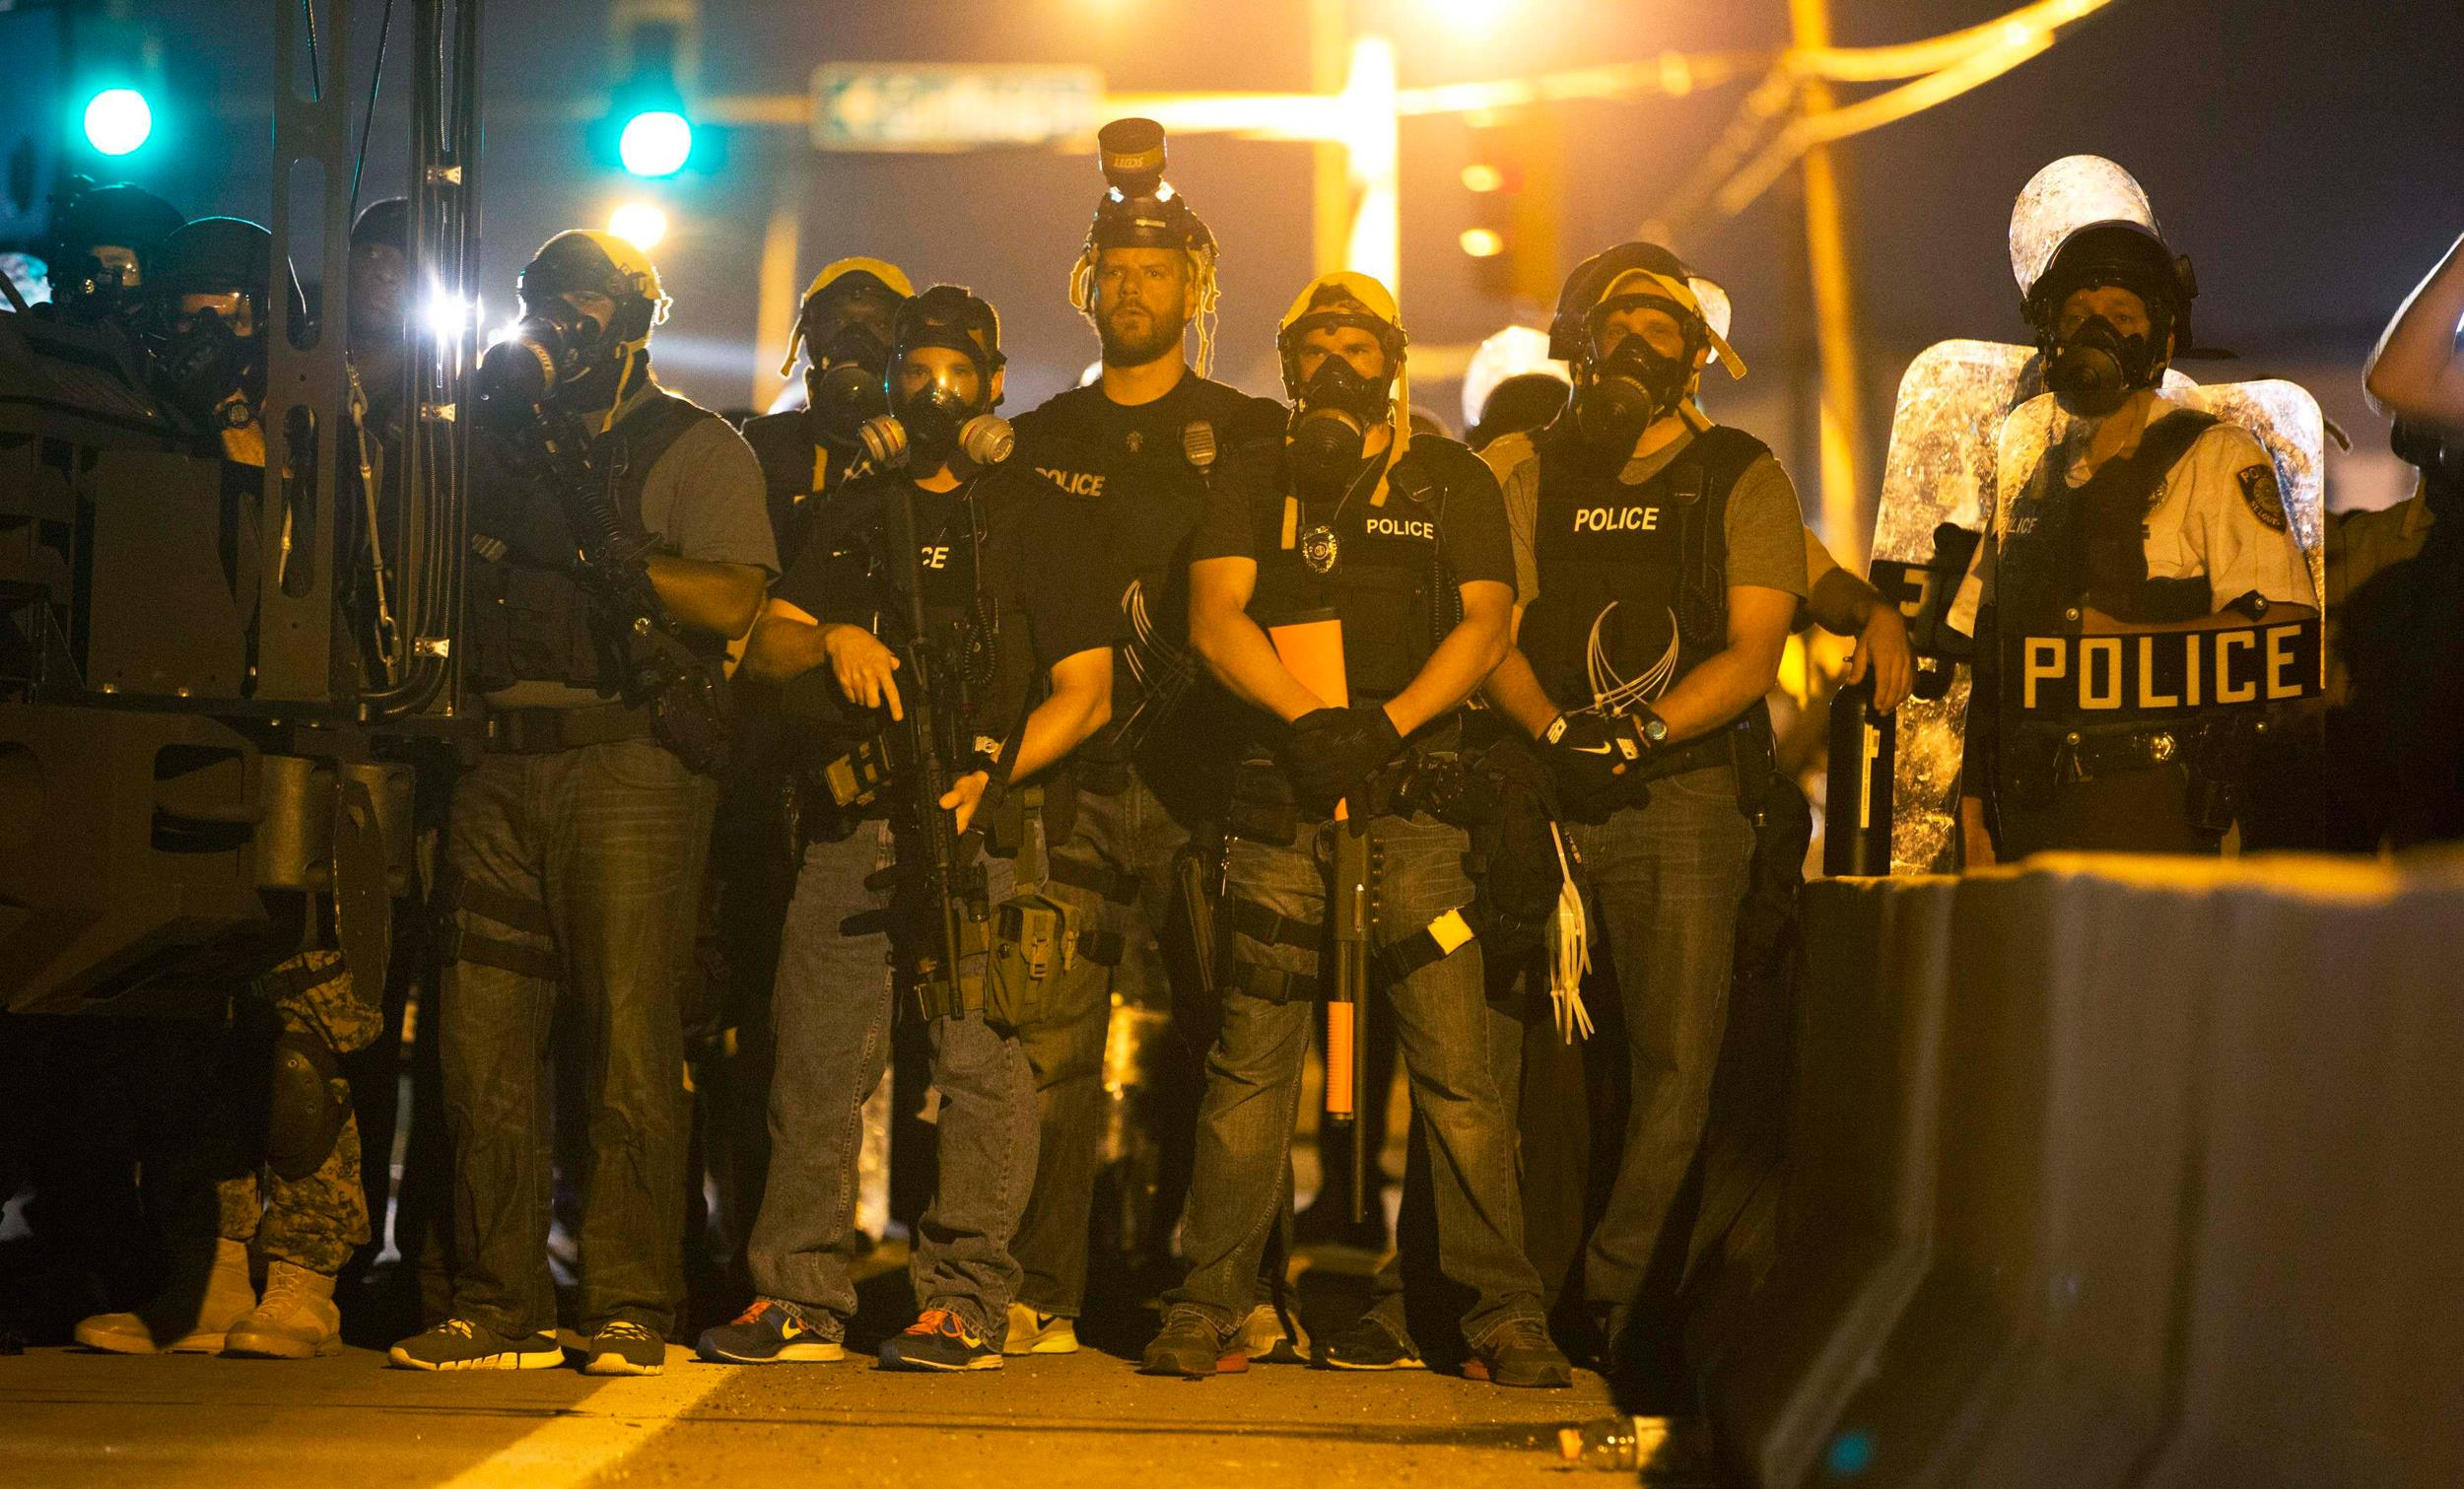 Image: Police officers keep watch while demonstrators protest the death of black teenager Michael Brown in Ferguson